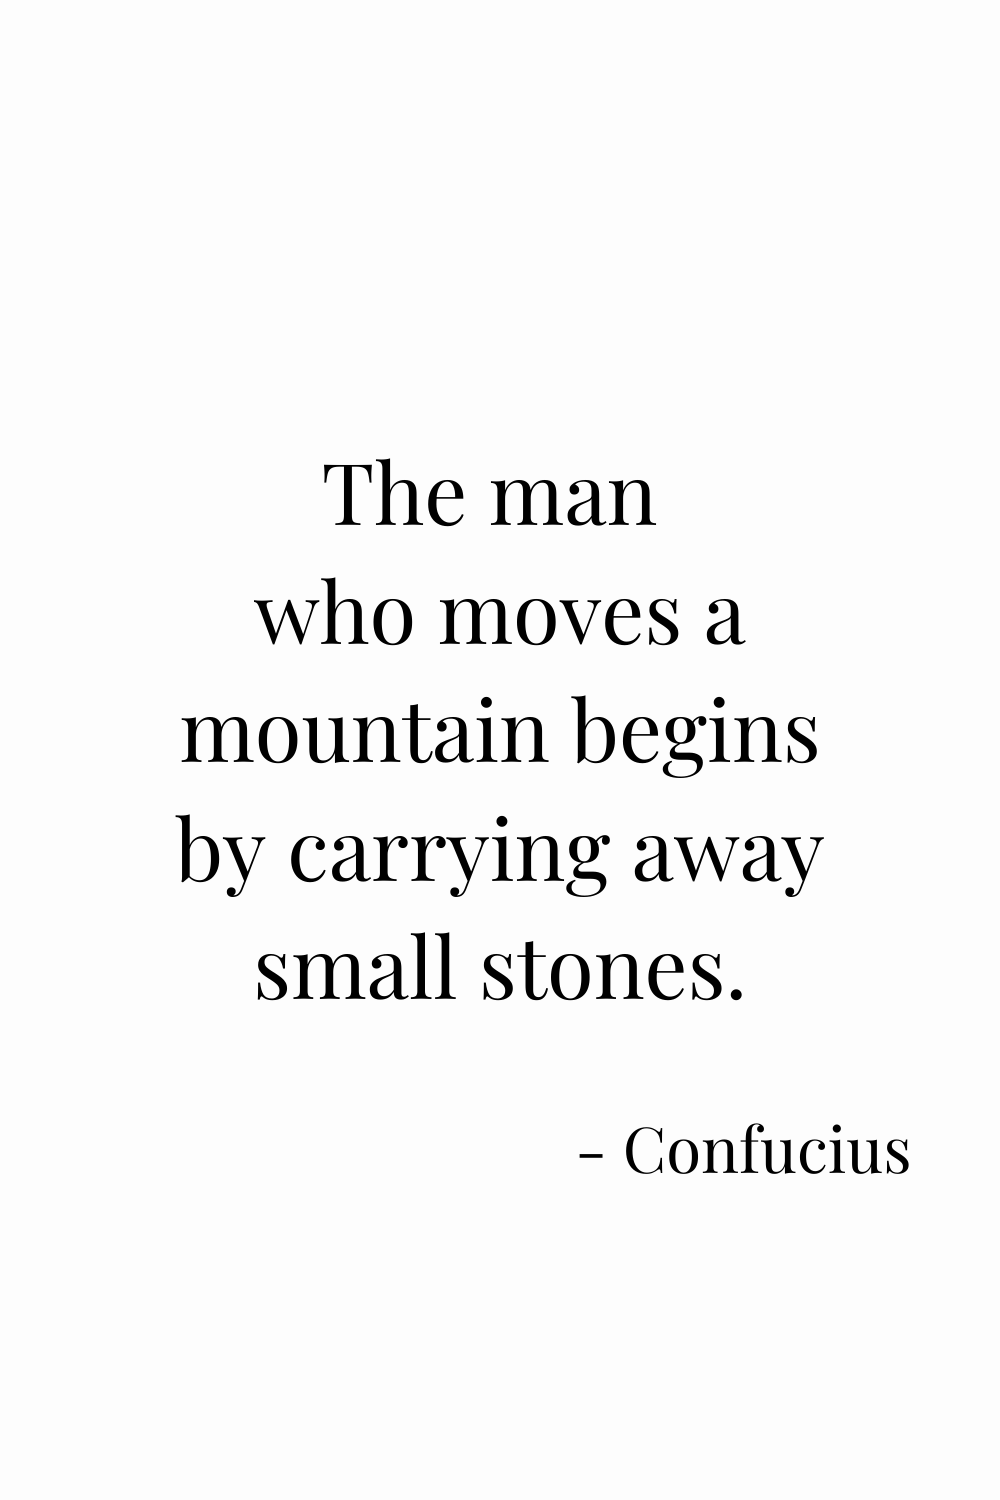 The man  who moves a mountain begins by carrying away small stones. - Confucius quotes; Motivational Quotes; Inspiring quotes; Quotes about change